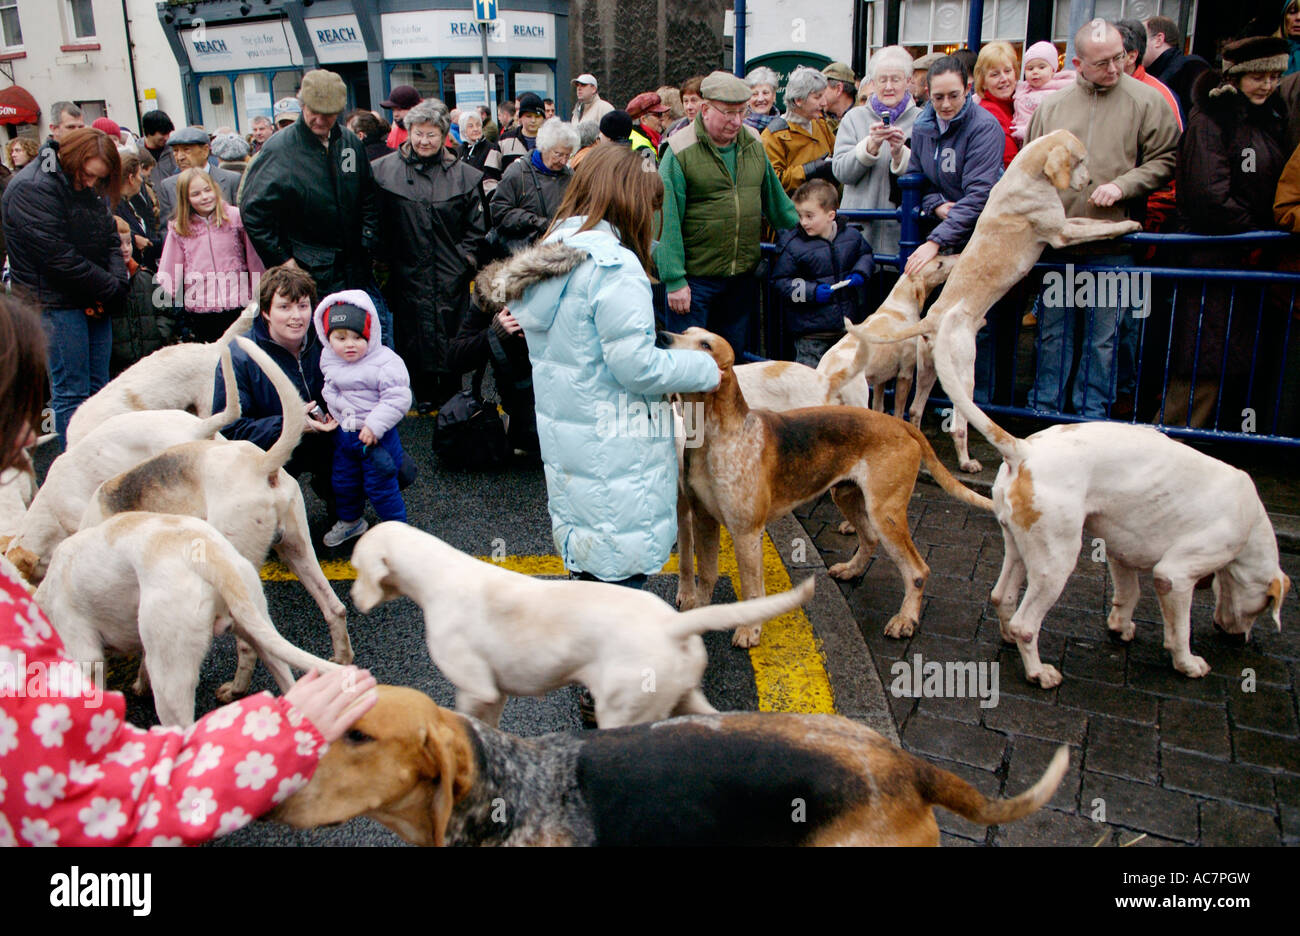 Monmouthshire Hunt gather outside The Angel Hotel Abergavenny South Wales UK GB for Boxing Day meet - Stock Image